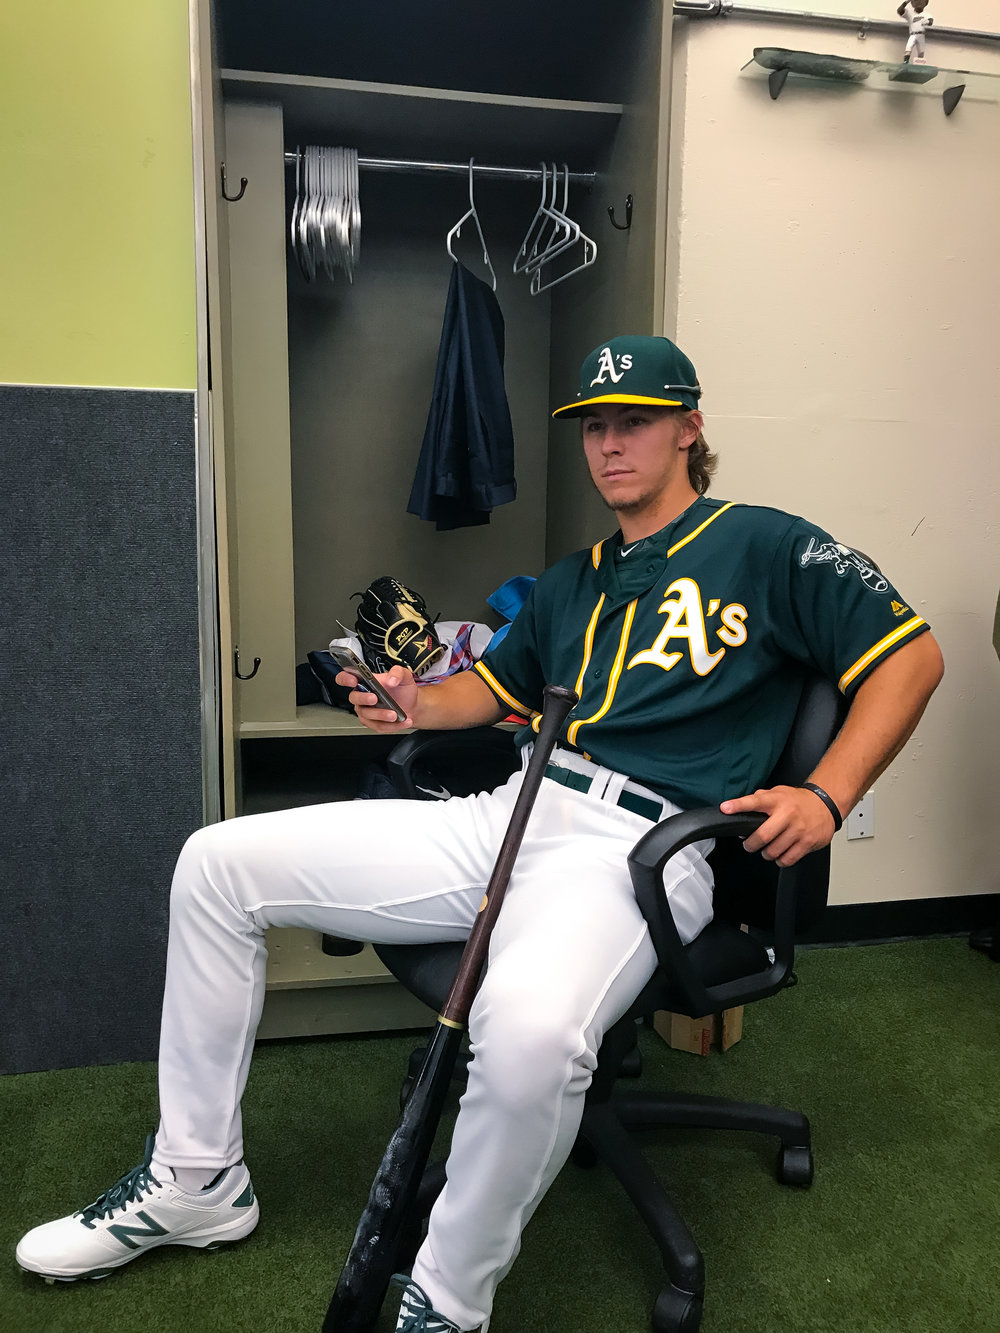 Beck was selected by the Oakland Athletics professional baseball team with the sixth overall pick in the 2016 amateur draft.